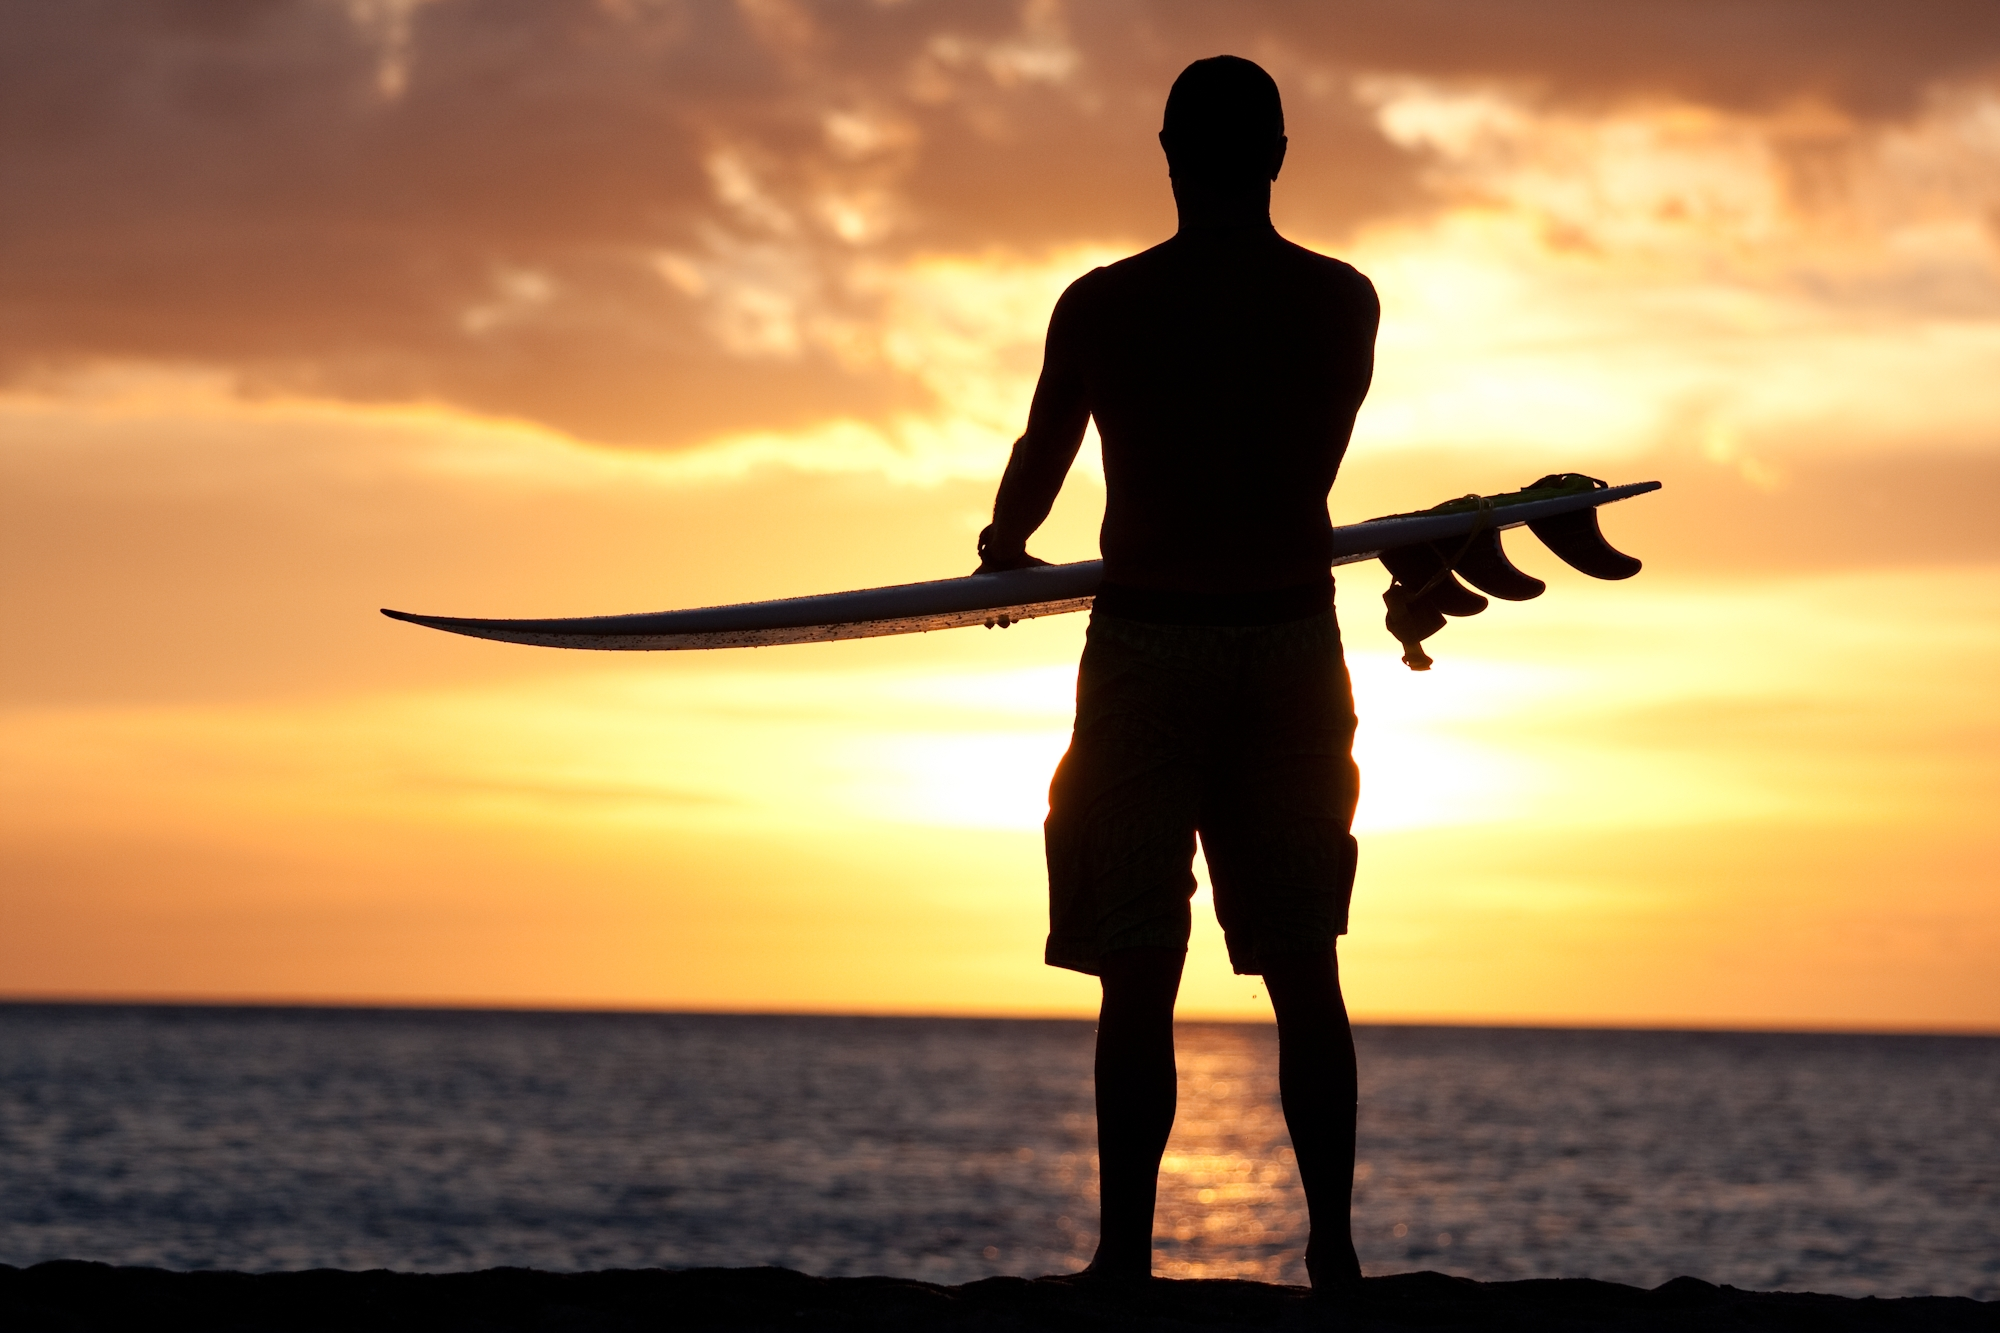 Man with surfboard on beach at sunset